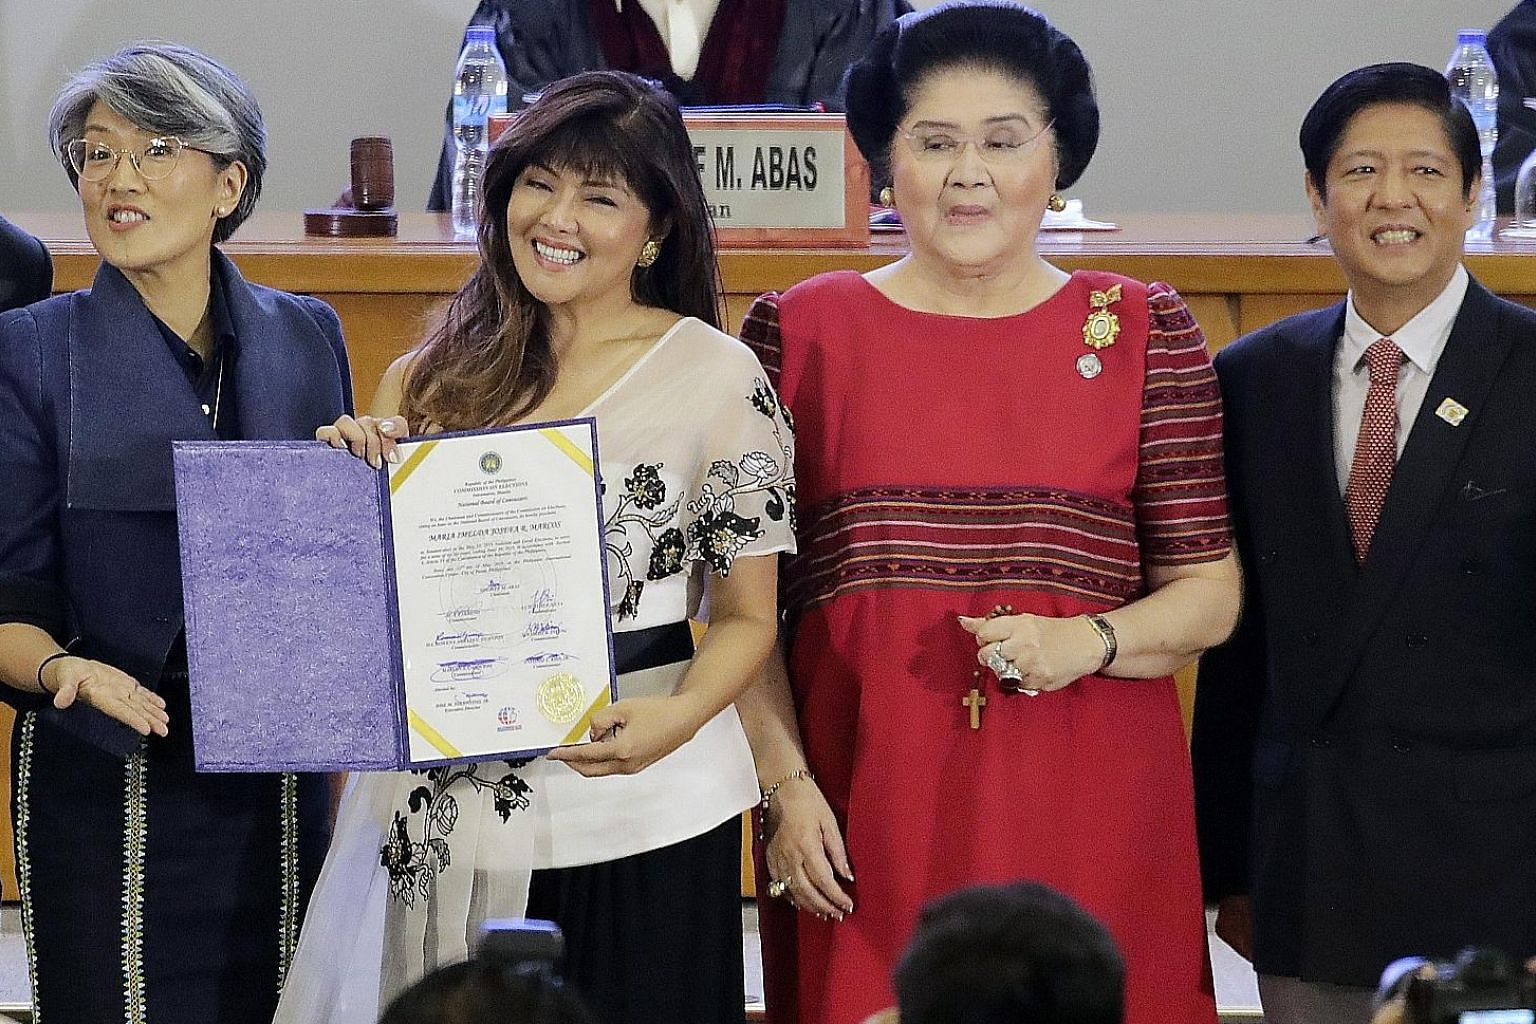 Senator-elect Imee Marcos, daughter of former strongman Ferdinand Marcos, holding her certificate next to her mother Imelda Marcos (in red), brother Bongbong and sister Irene during a proclamation of senators-elect in Manila, on May 22. A sweep by Pr